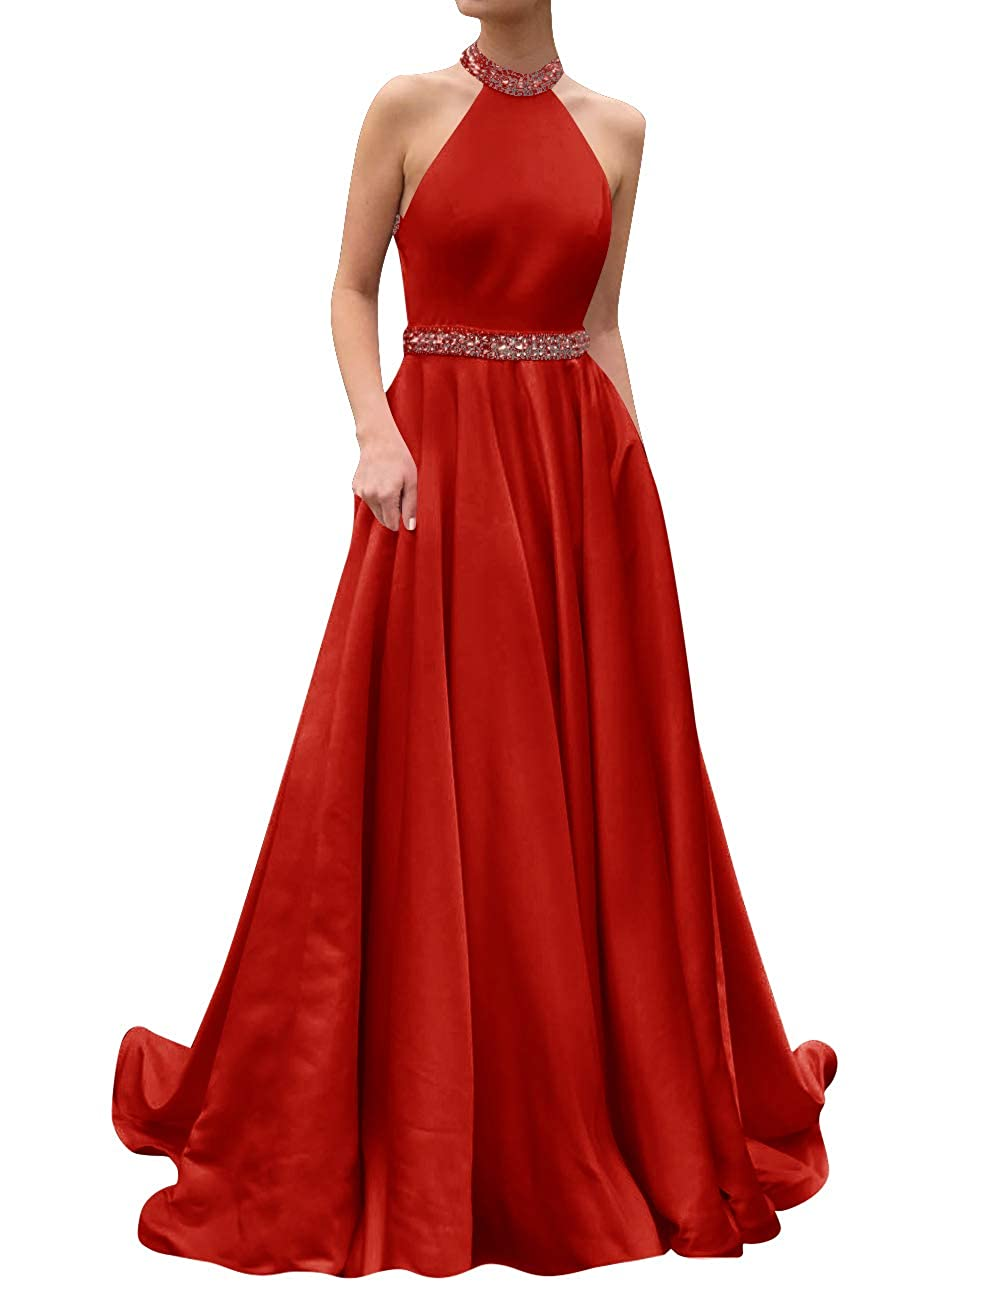 Red ASBridal Prom Dresses Long Evening Gowns Halter Beaded Party Prom Gowns Bridesmaid Dress Open Back